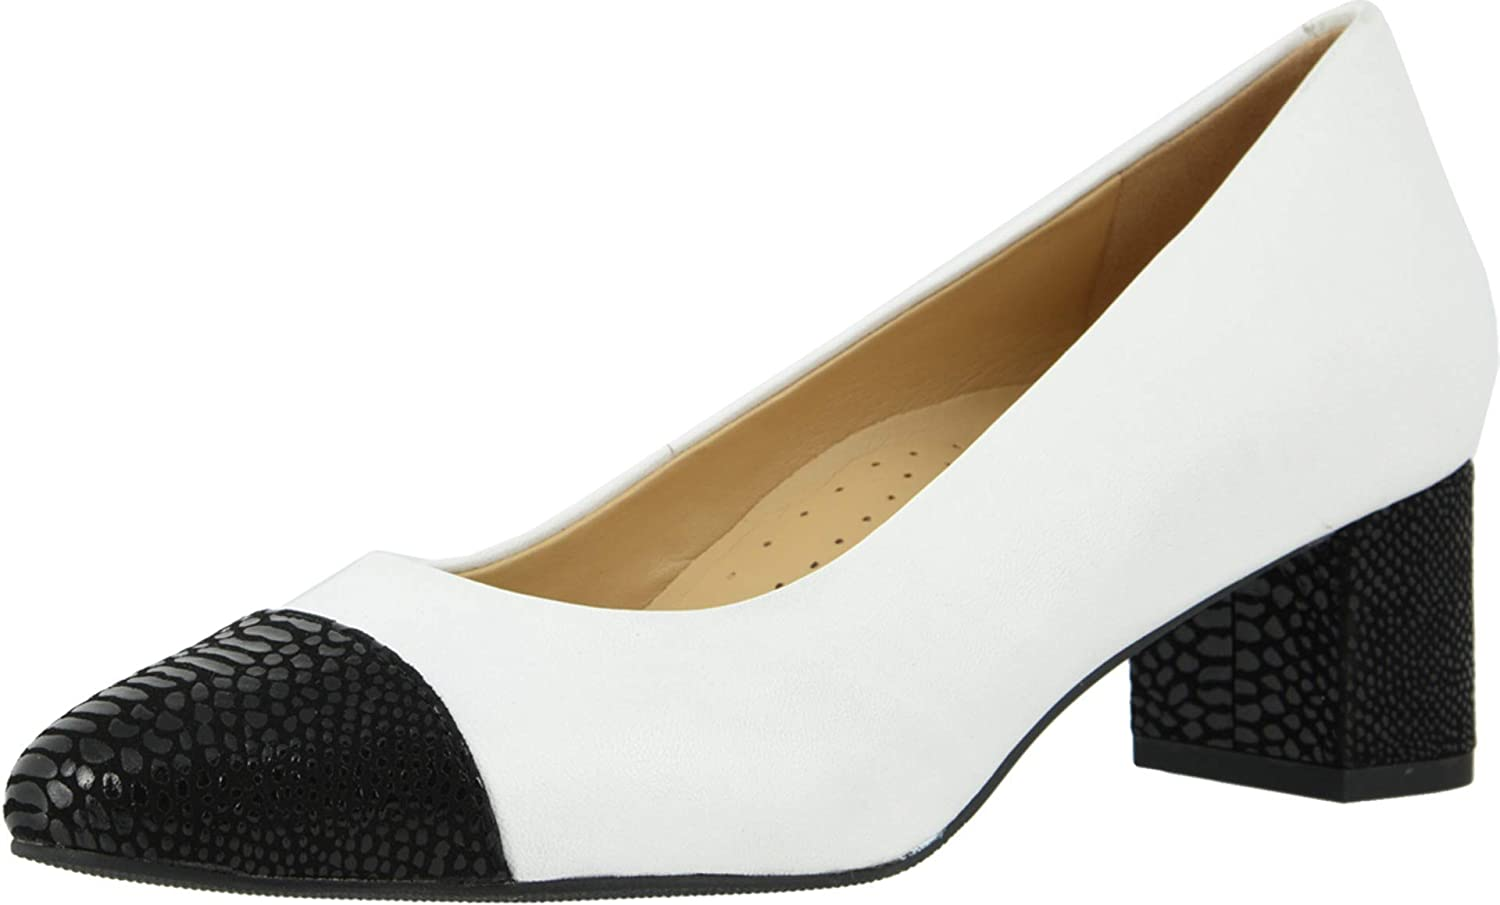 Trotters Women's Be super welcome Heels Pump Wide White Black online shopping 6.5